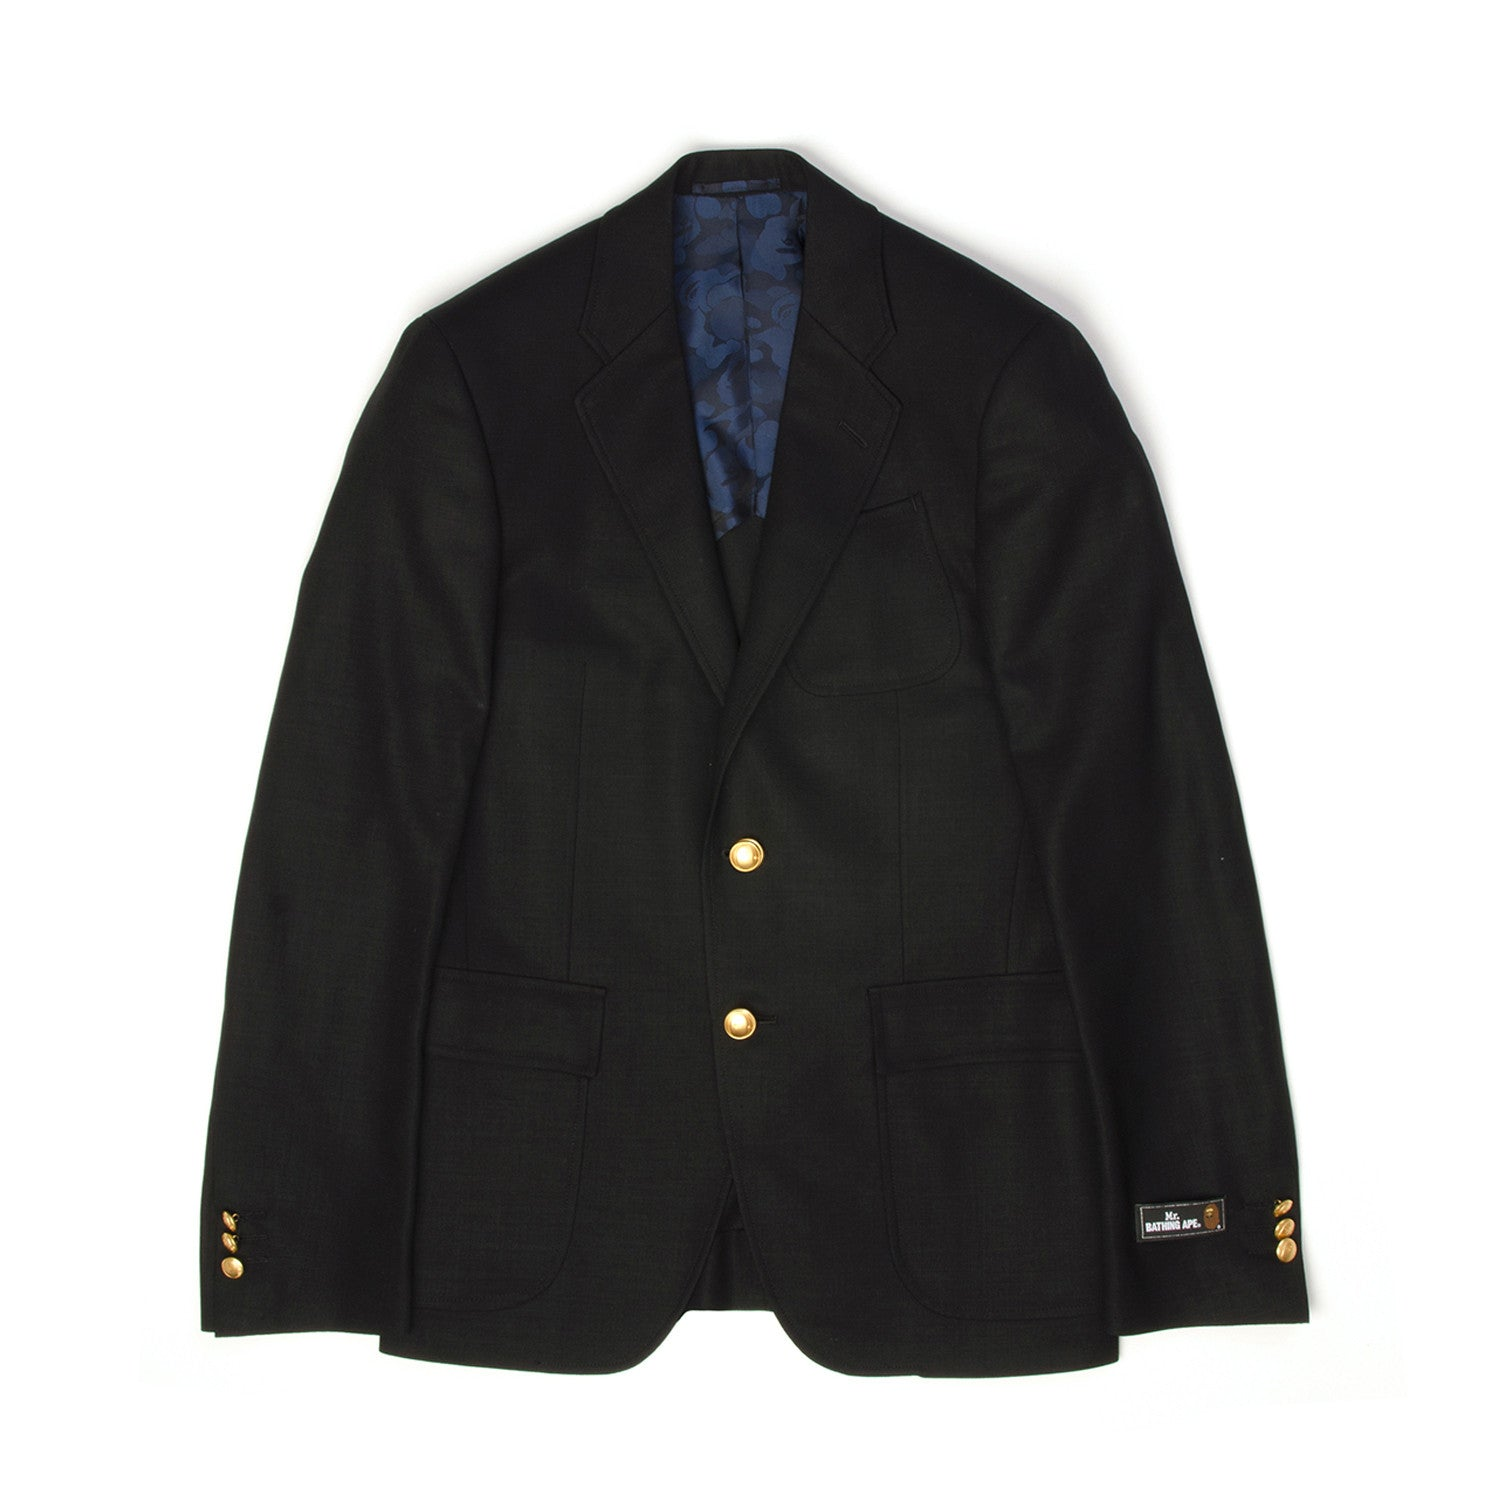 Mr. Bathing Ape 2 Button Blazer Navy - Concrete